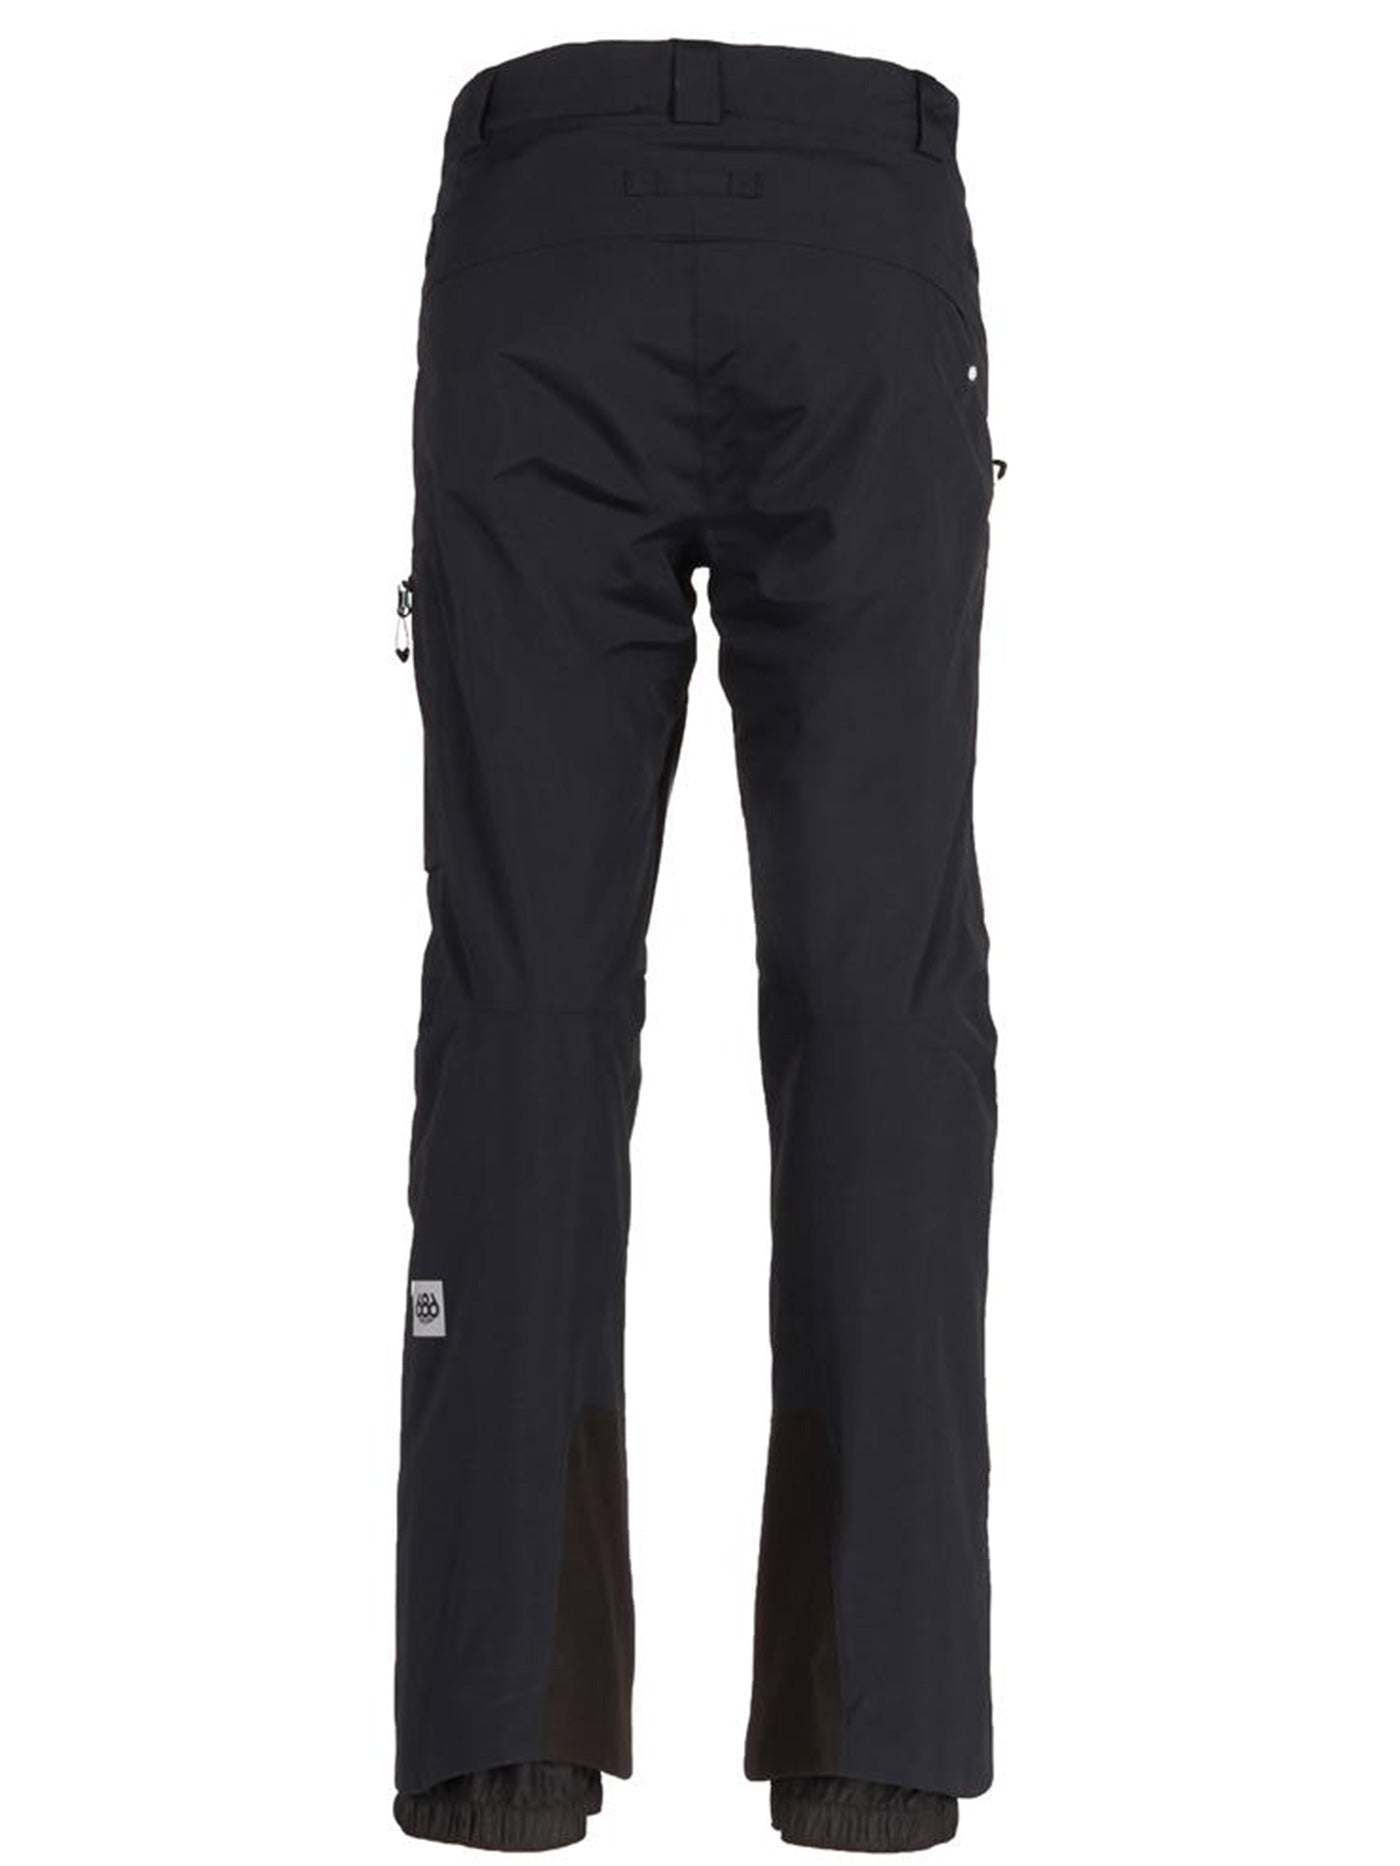 Utopia Gore-Tex Pants (Women)